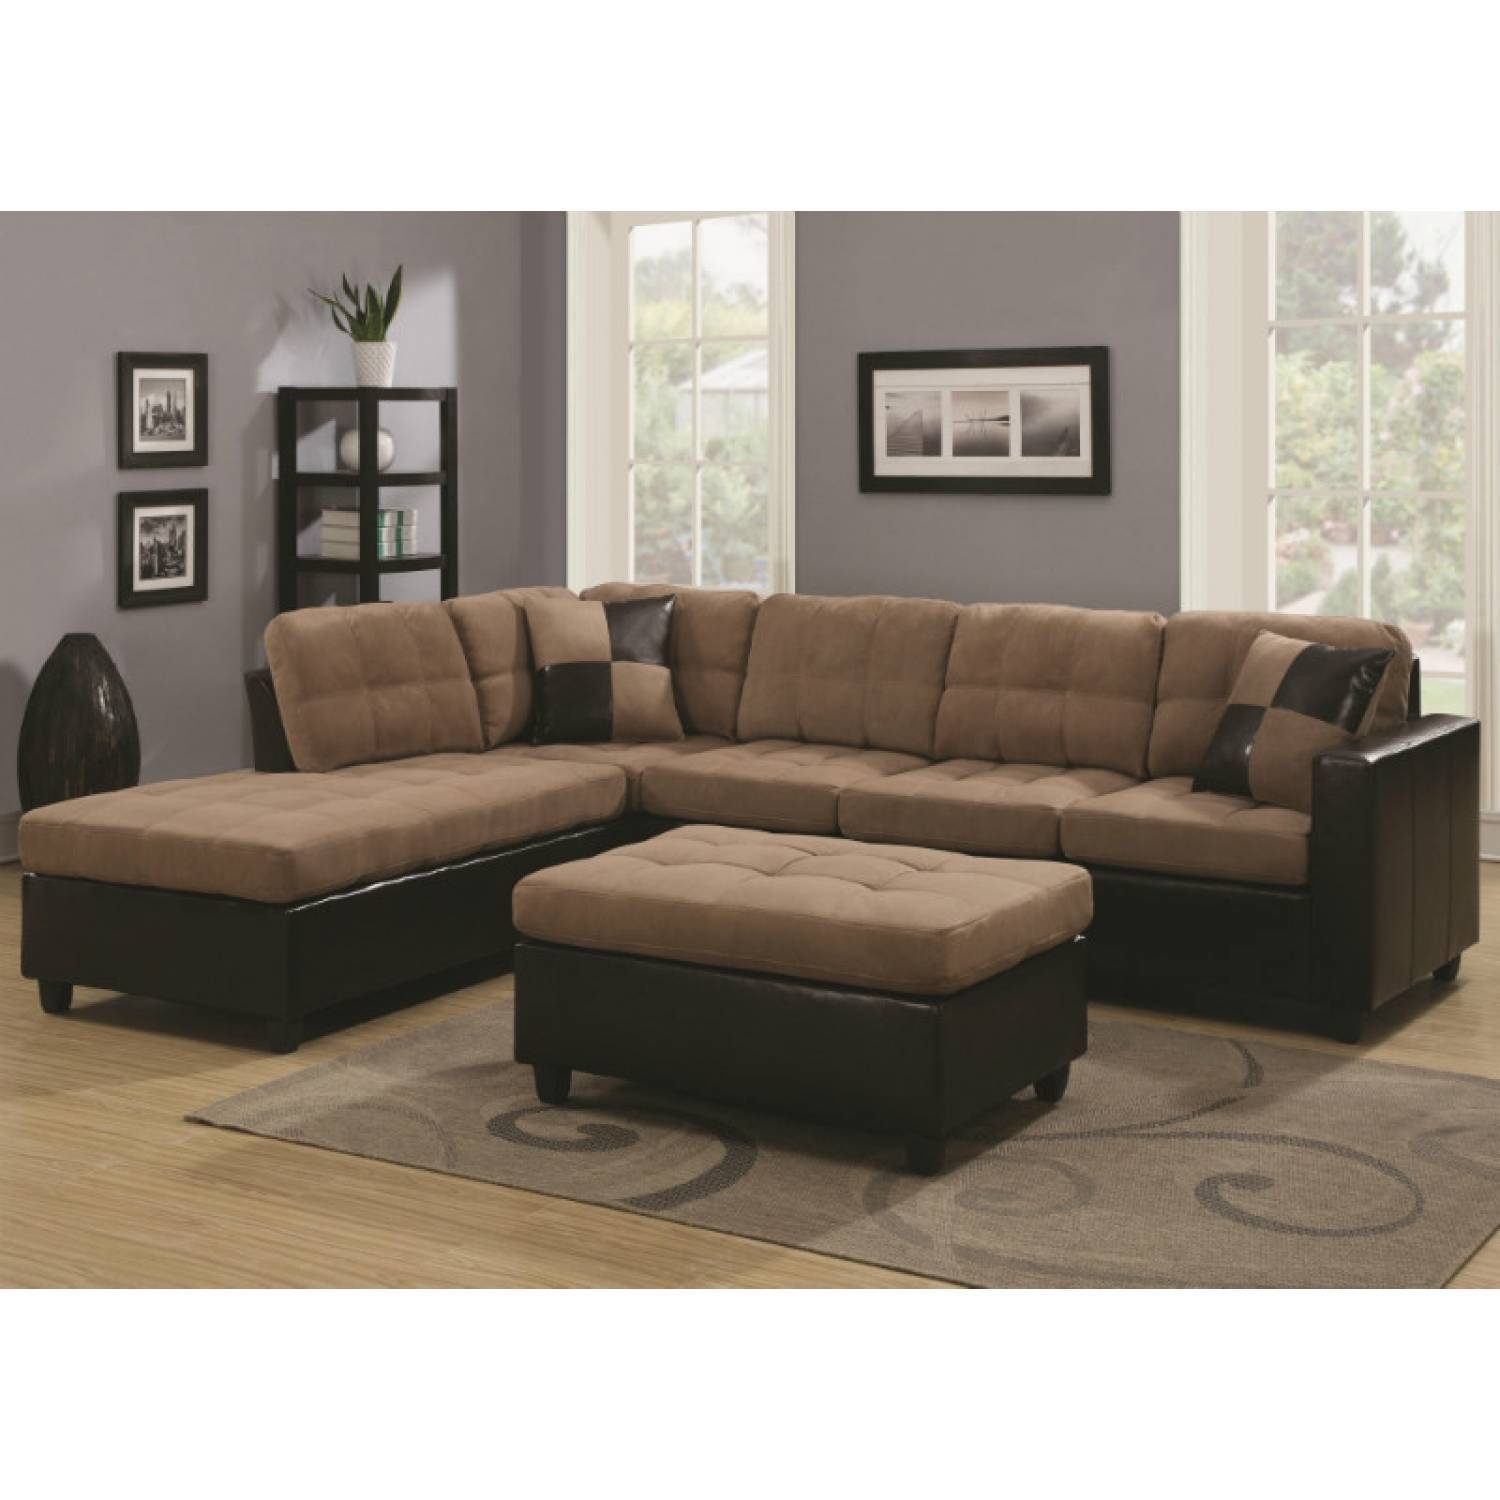 Sectional Sofas Sale Off 25% Furniture In Los Angeles - 999Furniture with Sectional Sofas Los Angeles (Image 24 of 25)